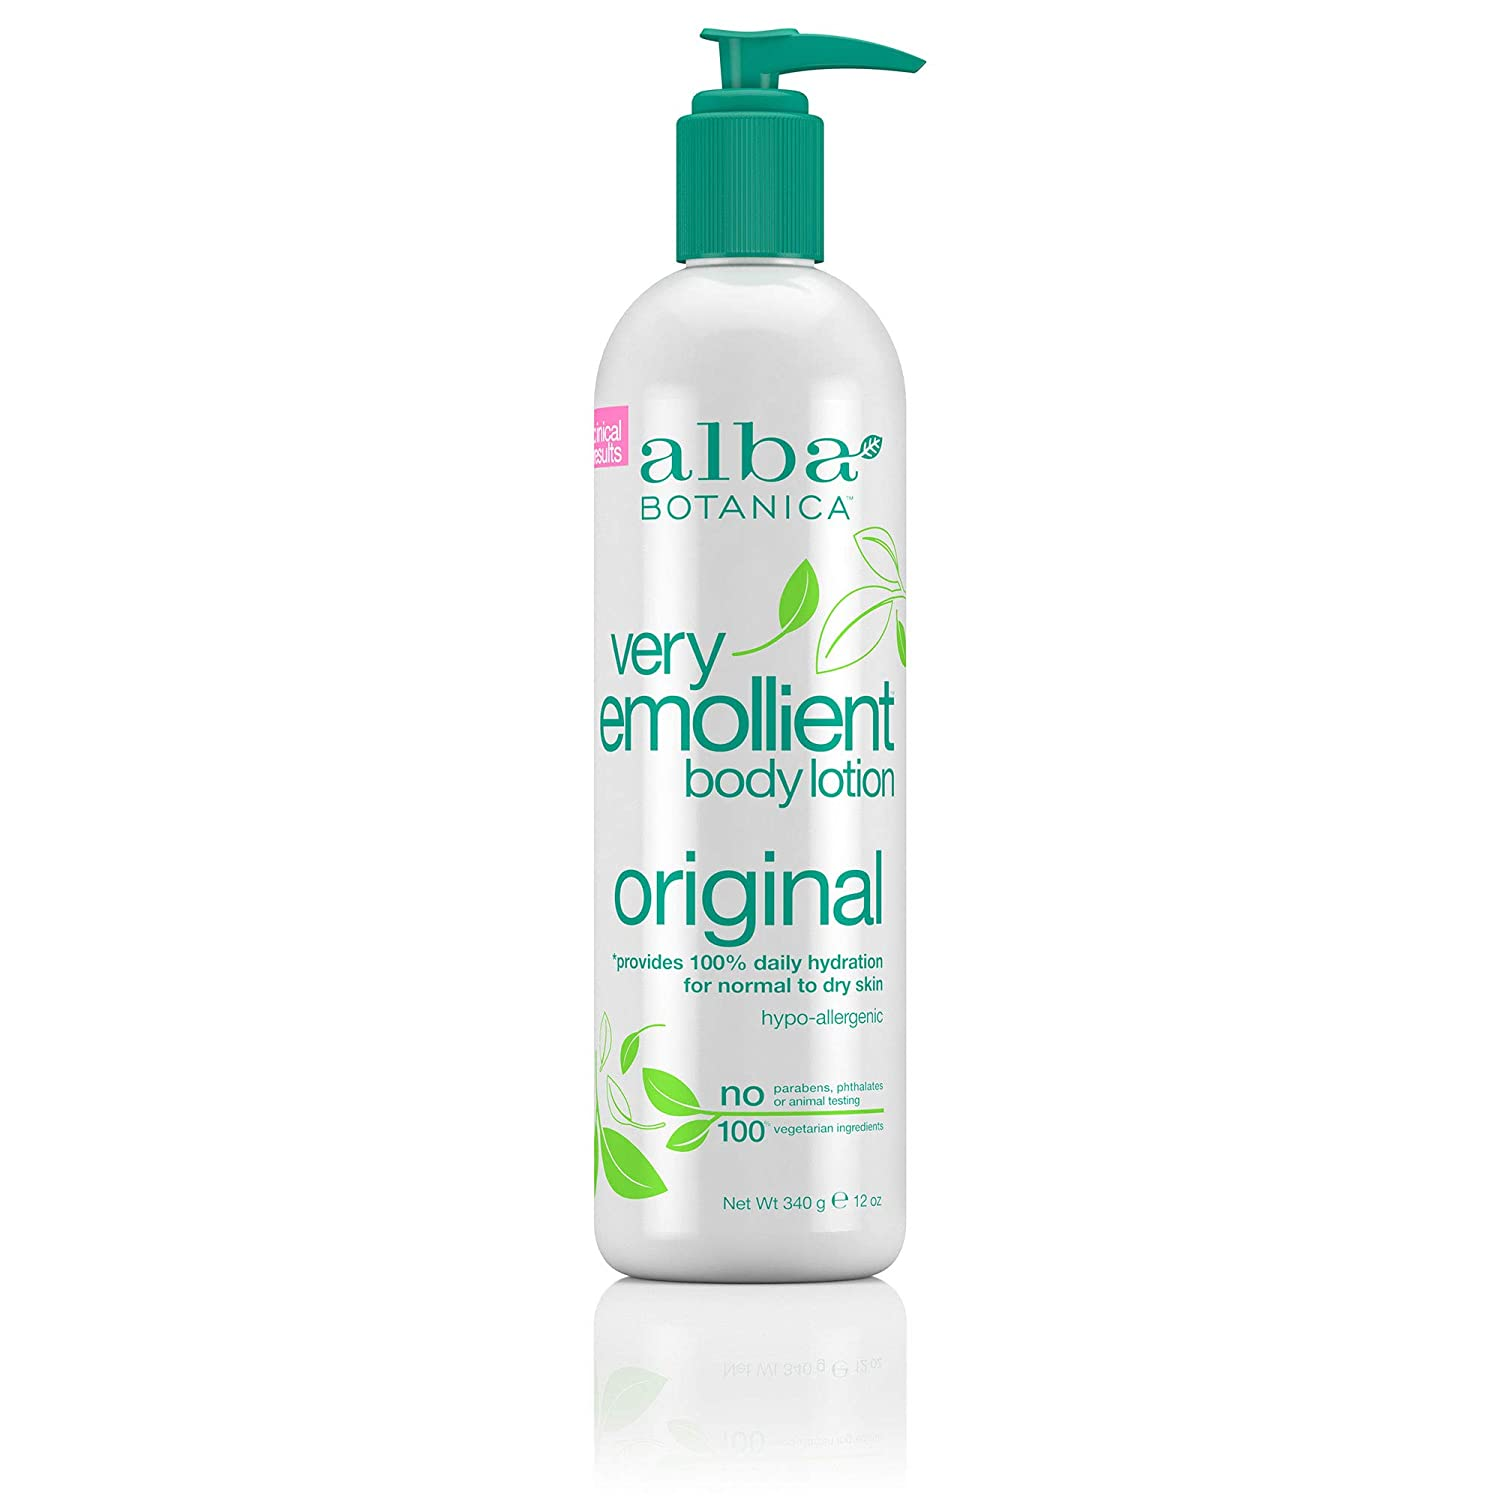 Alba Botanica Very Emollient Original Body Lotion, 12 oz.